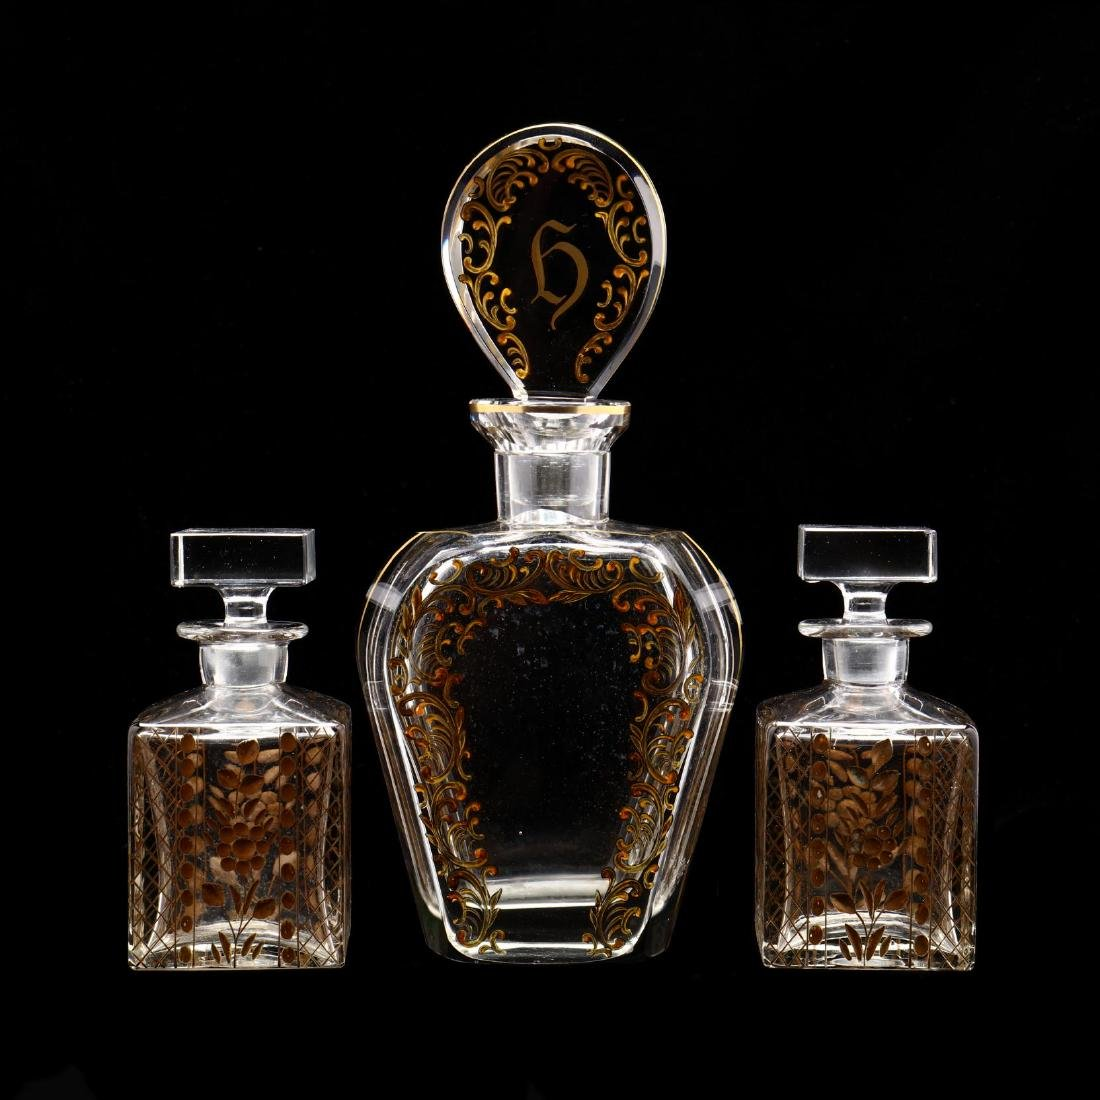 Three Large Antique Scent Bottles